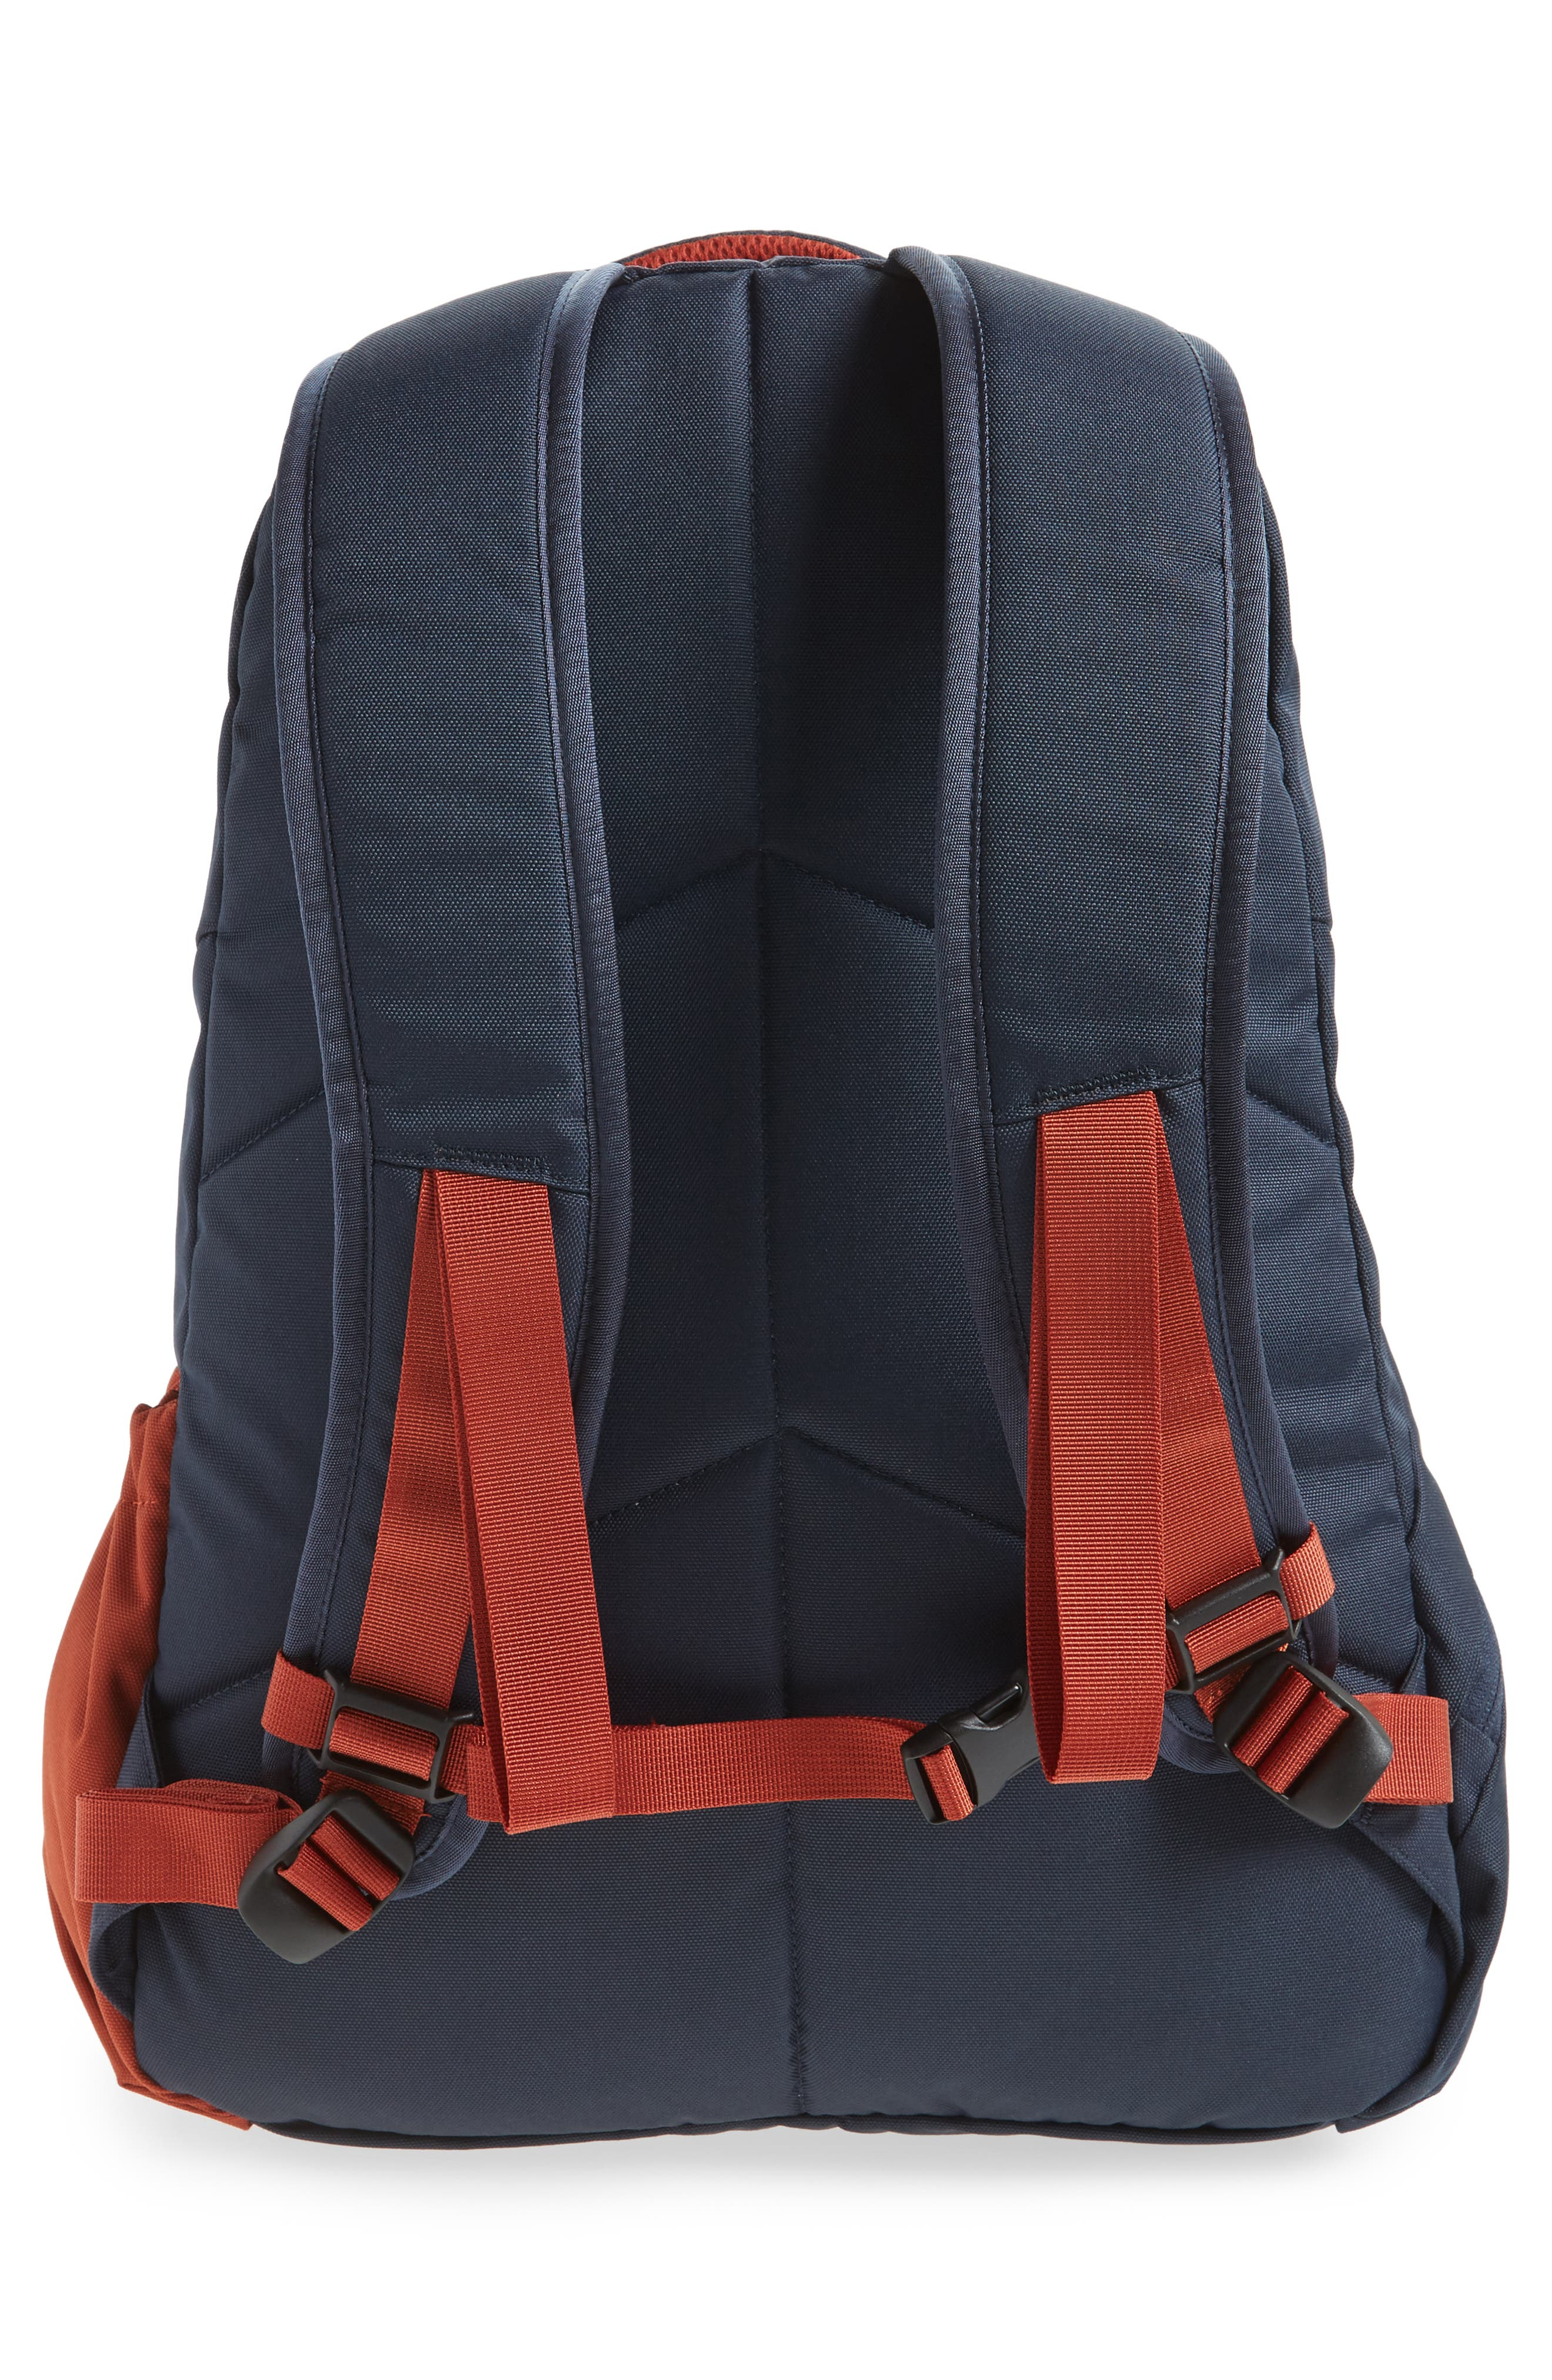 Rift Backpack,                             Alternate thumbnail 2, color,                             Navy/ Rust